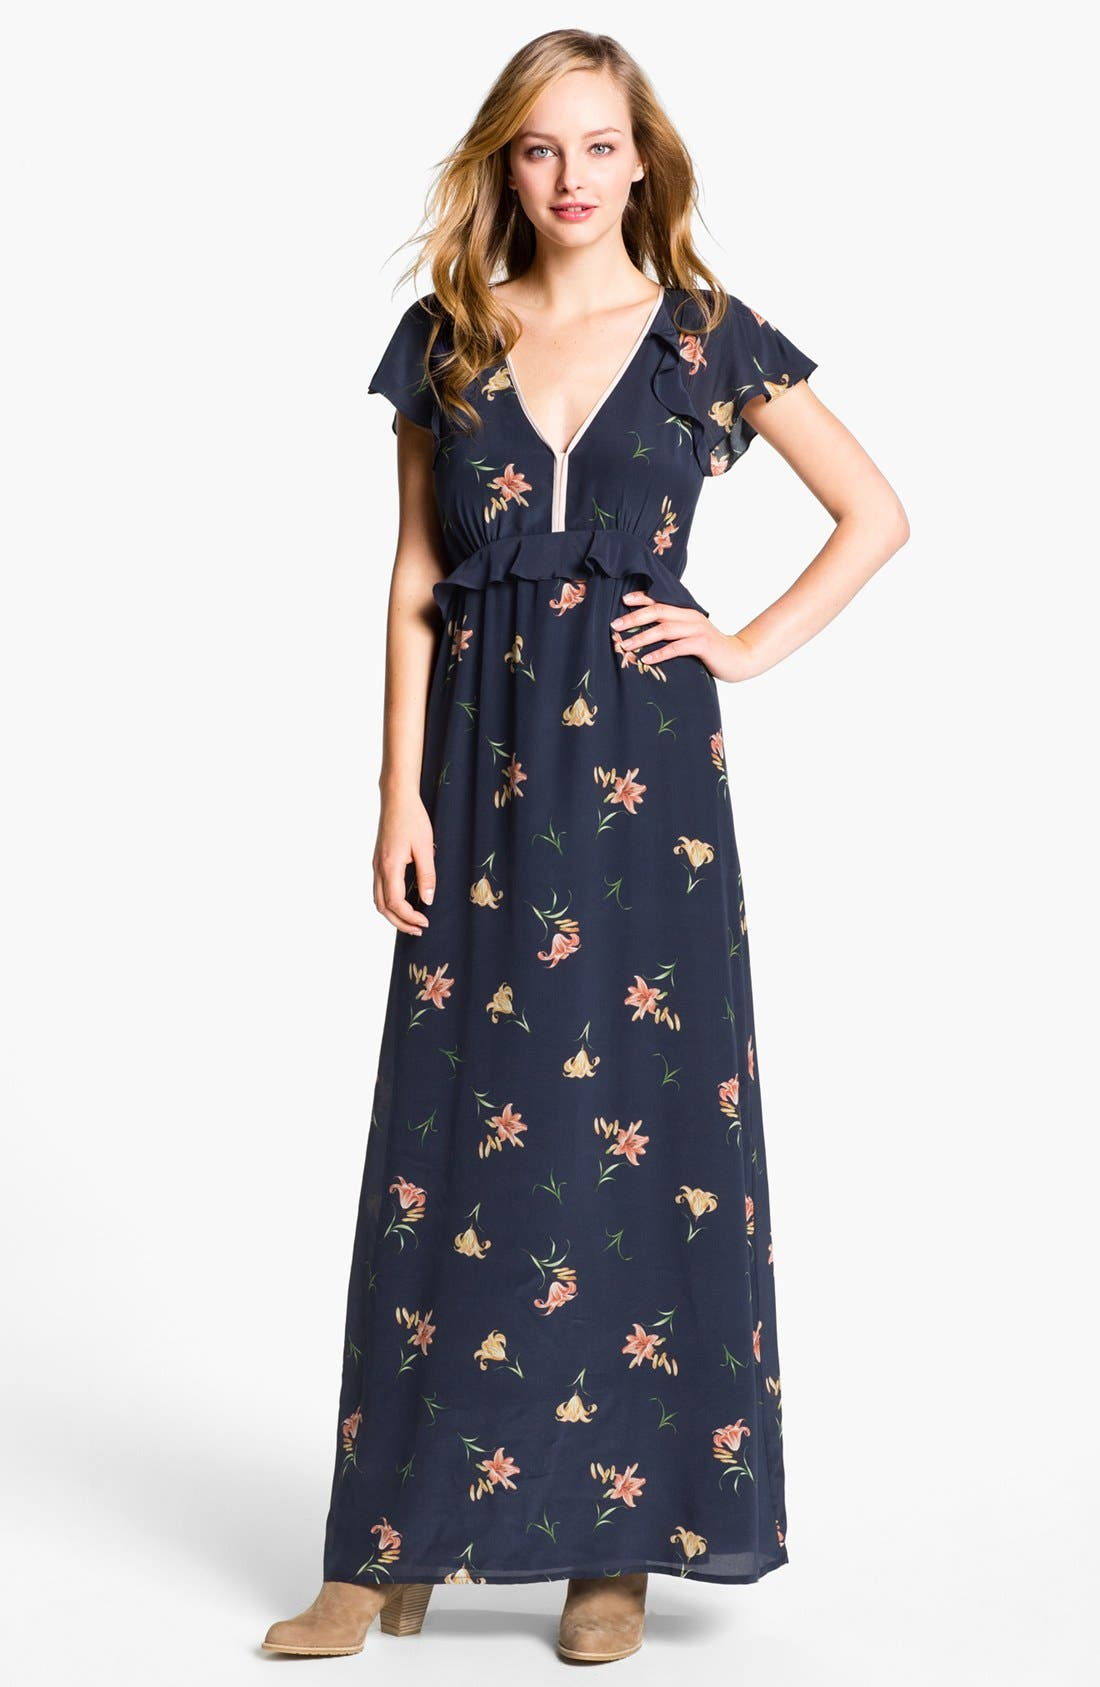 Main Image - French Connection 'Lilly Anna' Print Ruffled Maxi Dress